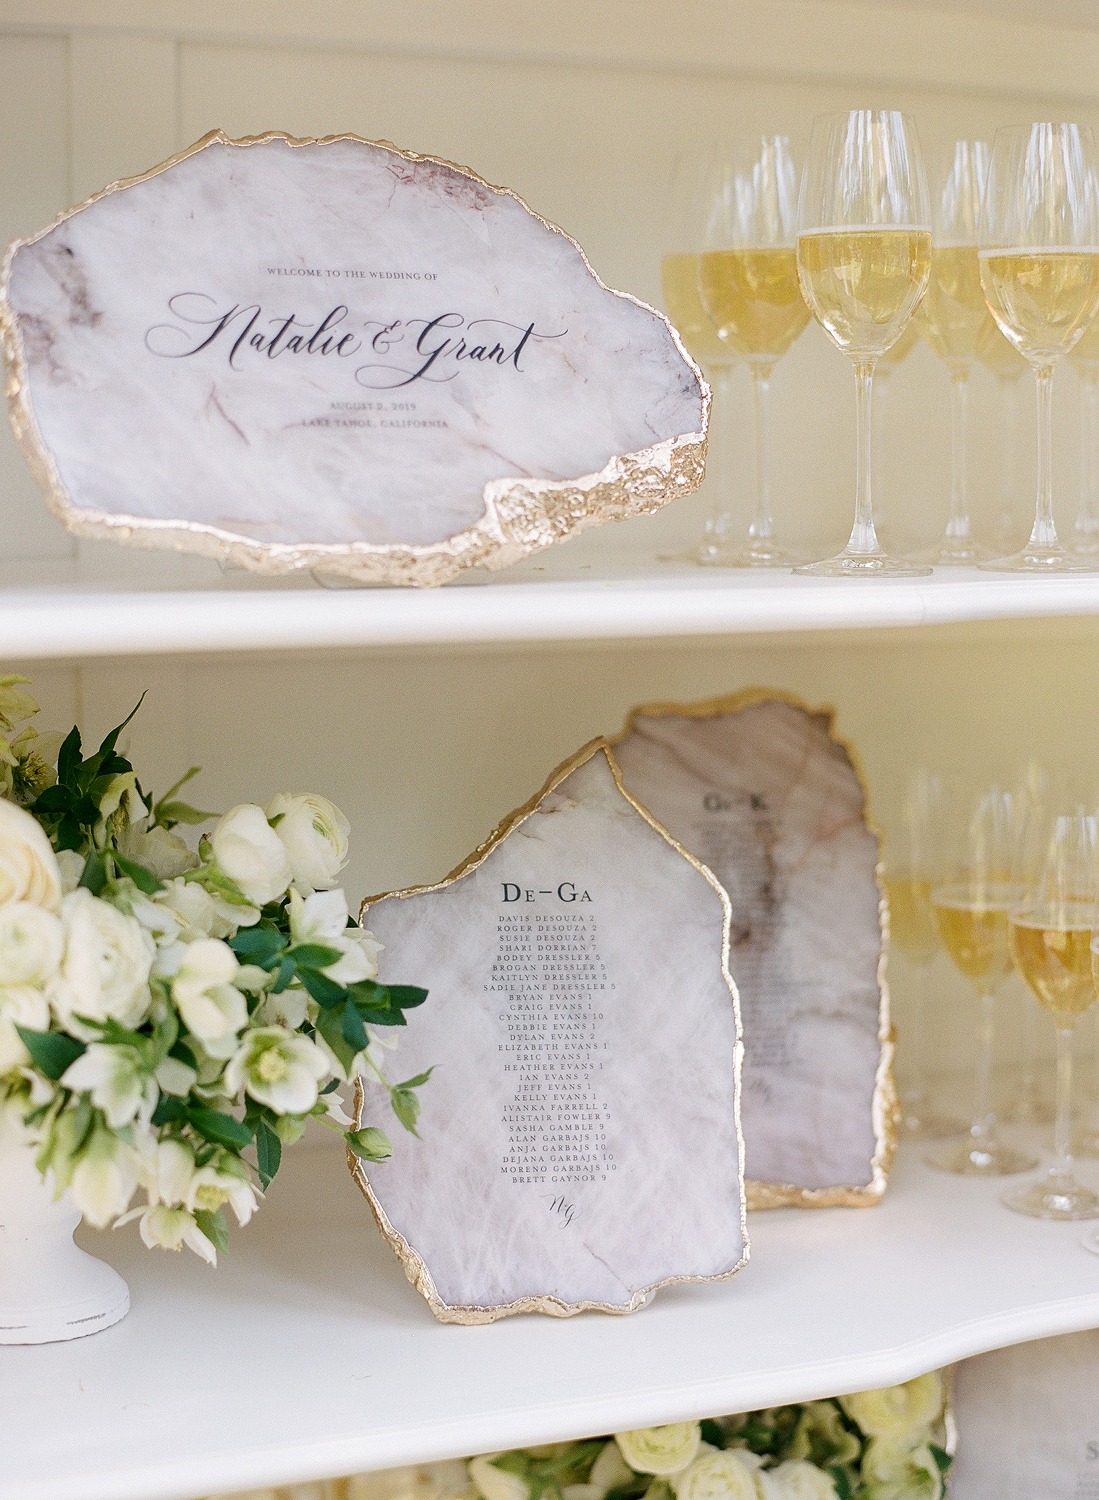 Natalie and Grant wedding seating chart on calligraphed agate slices